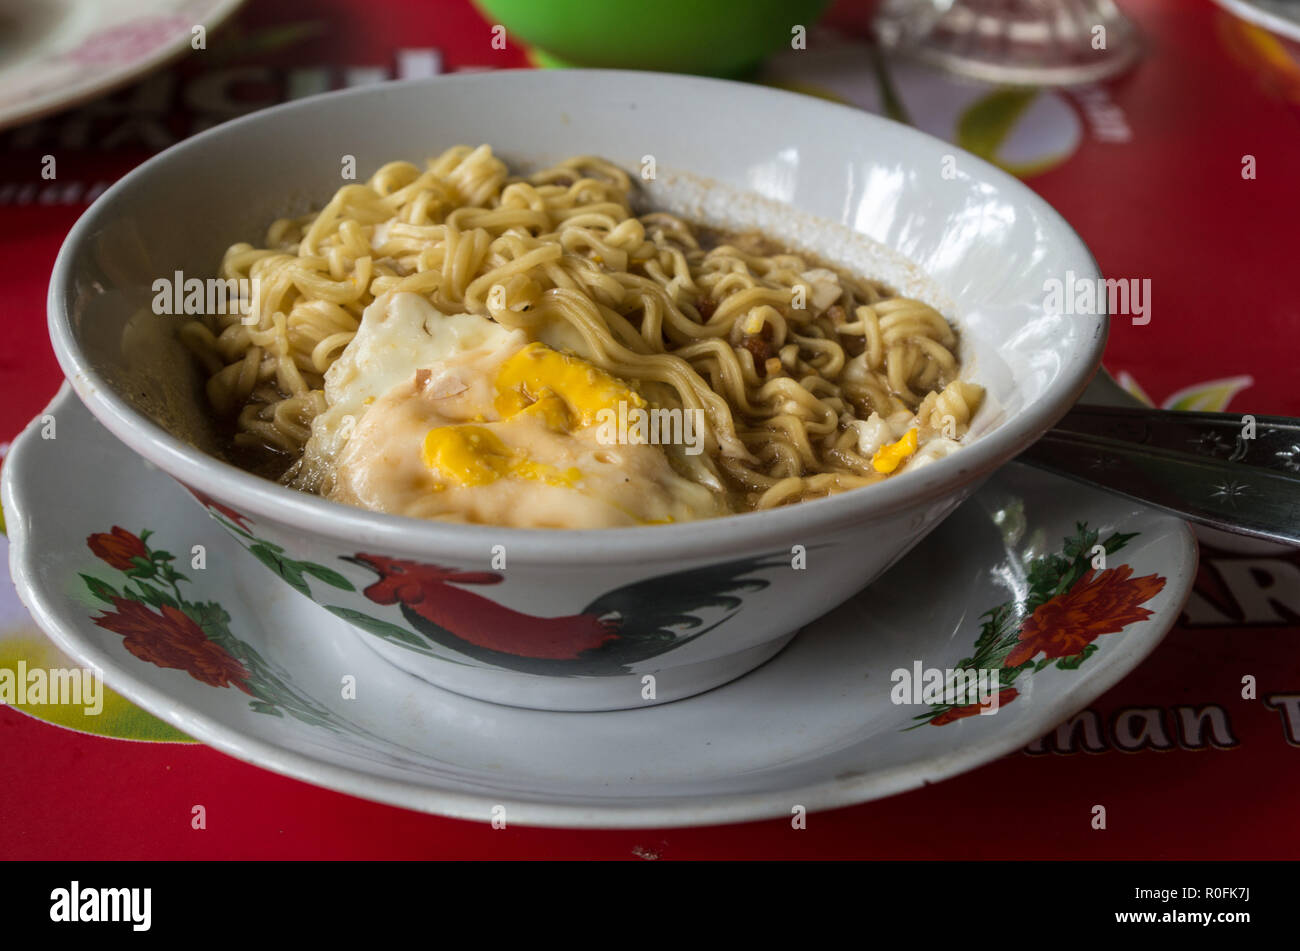 MIE REBUS - Indonesian style noodle soup - Stock Image